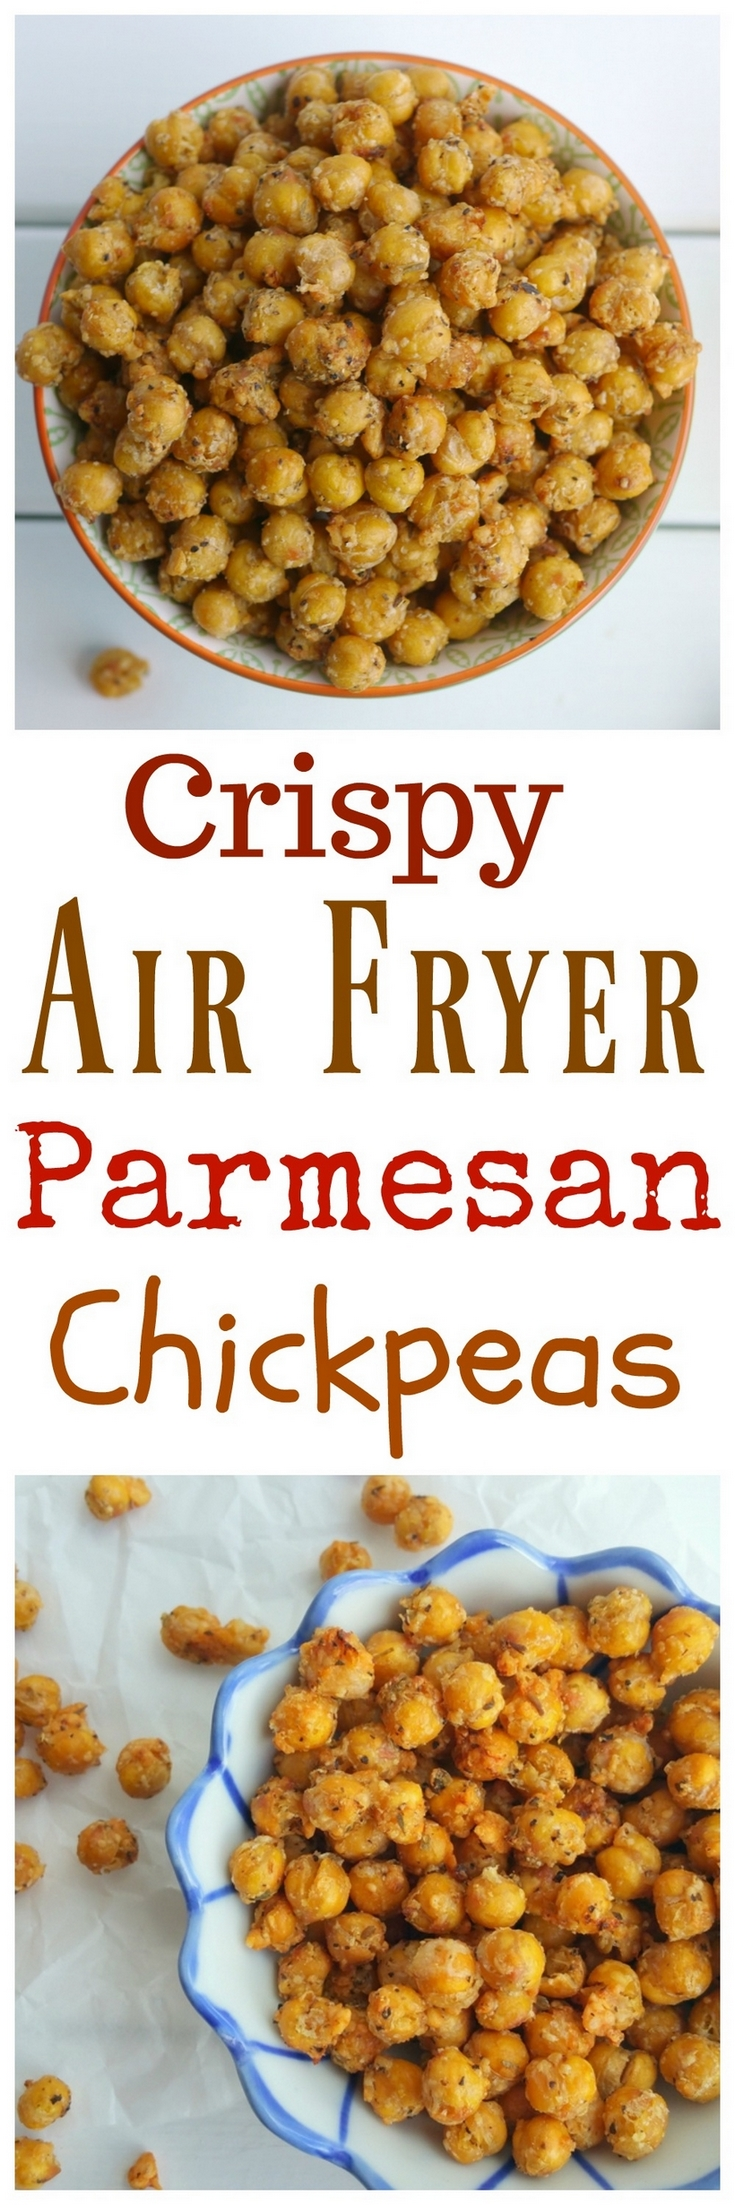 Crunchy on the outside and creamy on the inside, these Crispy Air Fryer Parmesan Chickpeas are the perfect snack on their own, or toss them on top of salads or into a snack mix. Making chickpeas in the air fryer is a quick and easy way to achieve the perfect crispness from NoblePig.com. #airfryer #chickpeas #glutenfree #plantbased via @cmpollak1